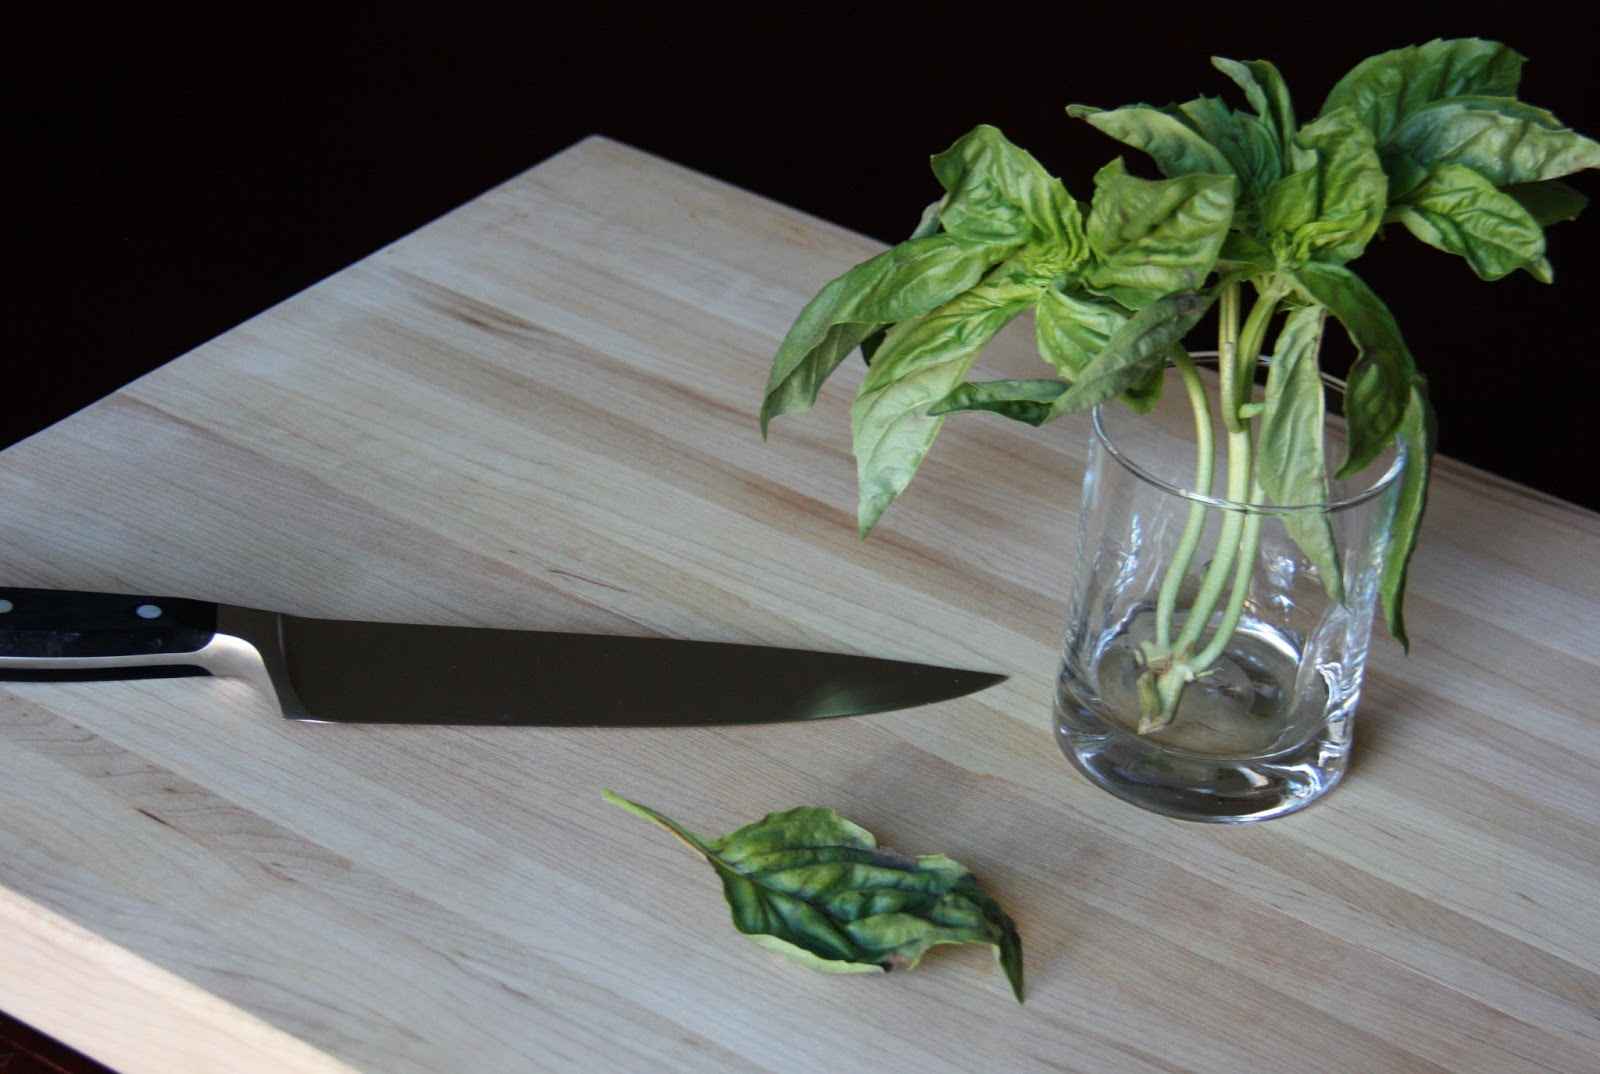 how to cut my basil plant